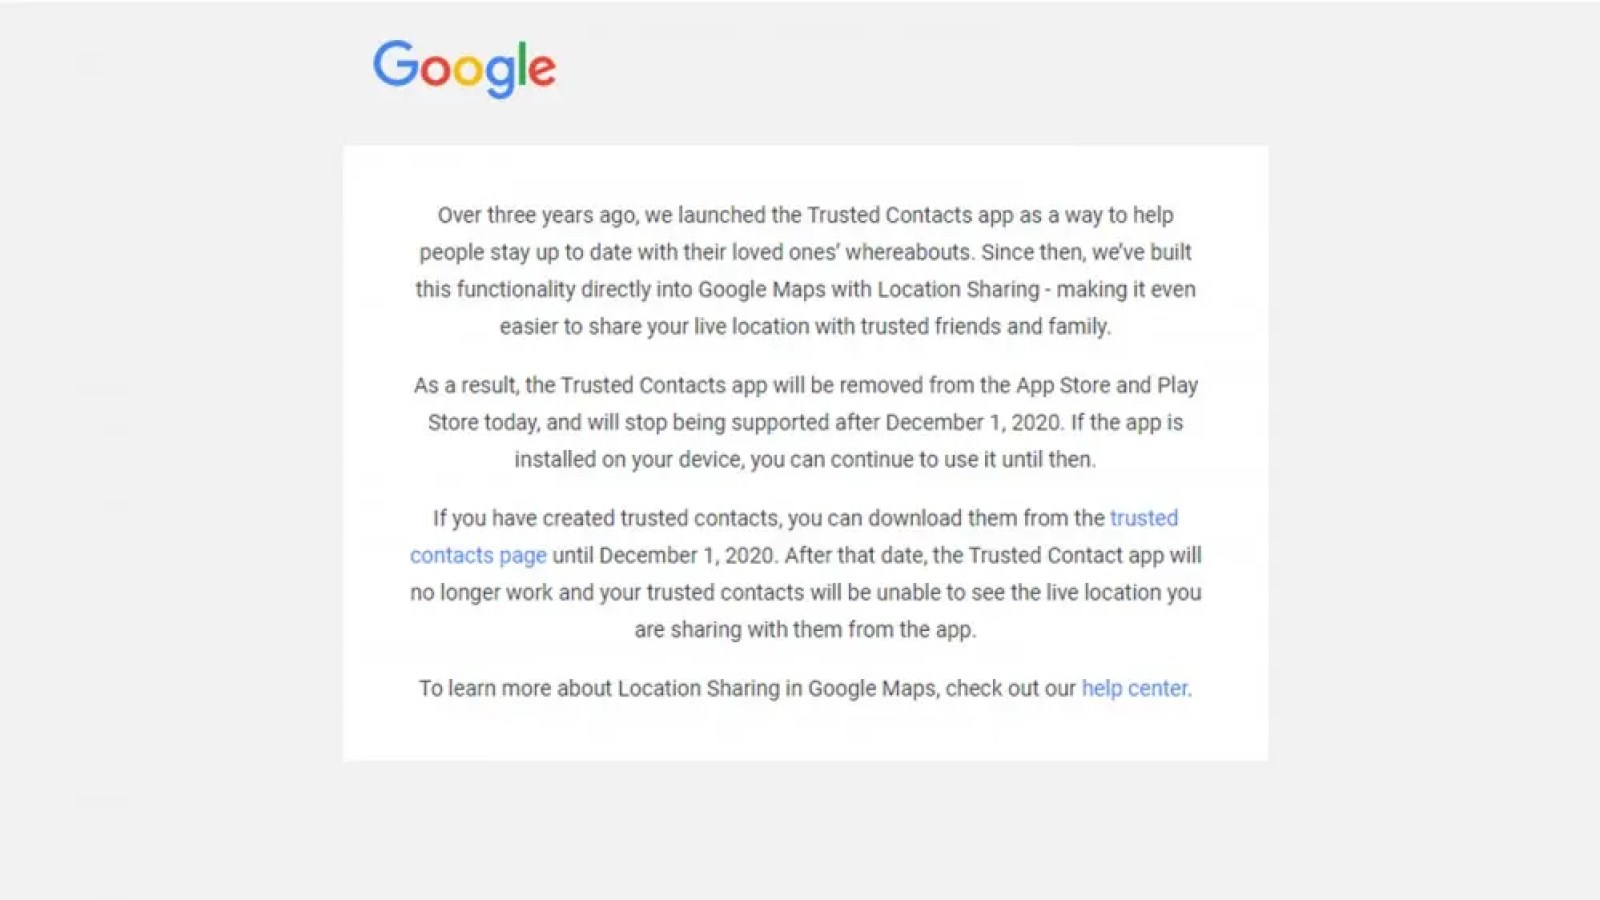 Email text from Google about removing the Google Trusted Contacts app